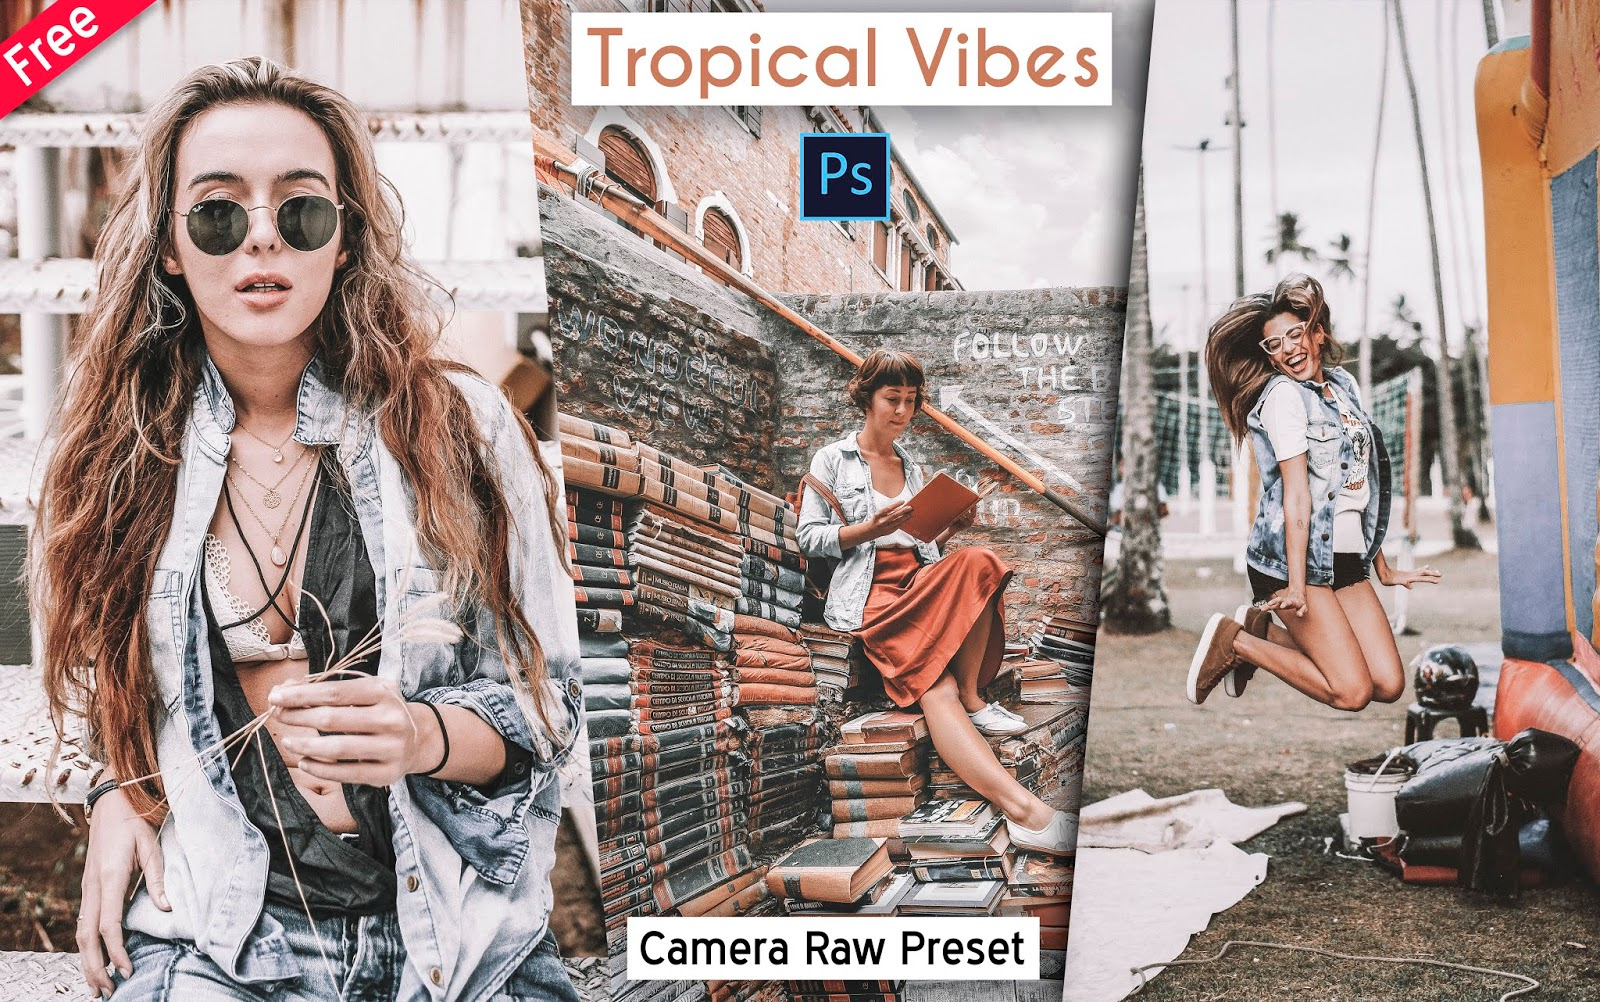 Download Tropical Vibes Camera Raw Preset for Free | How to Edit Your Photos with Tropical Vibes Effect in Photoshop